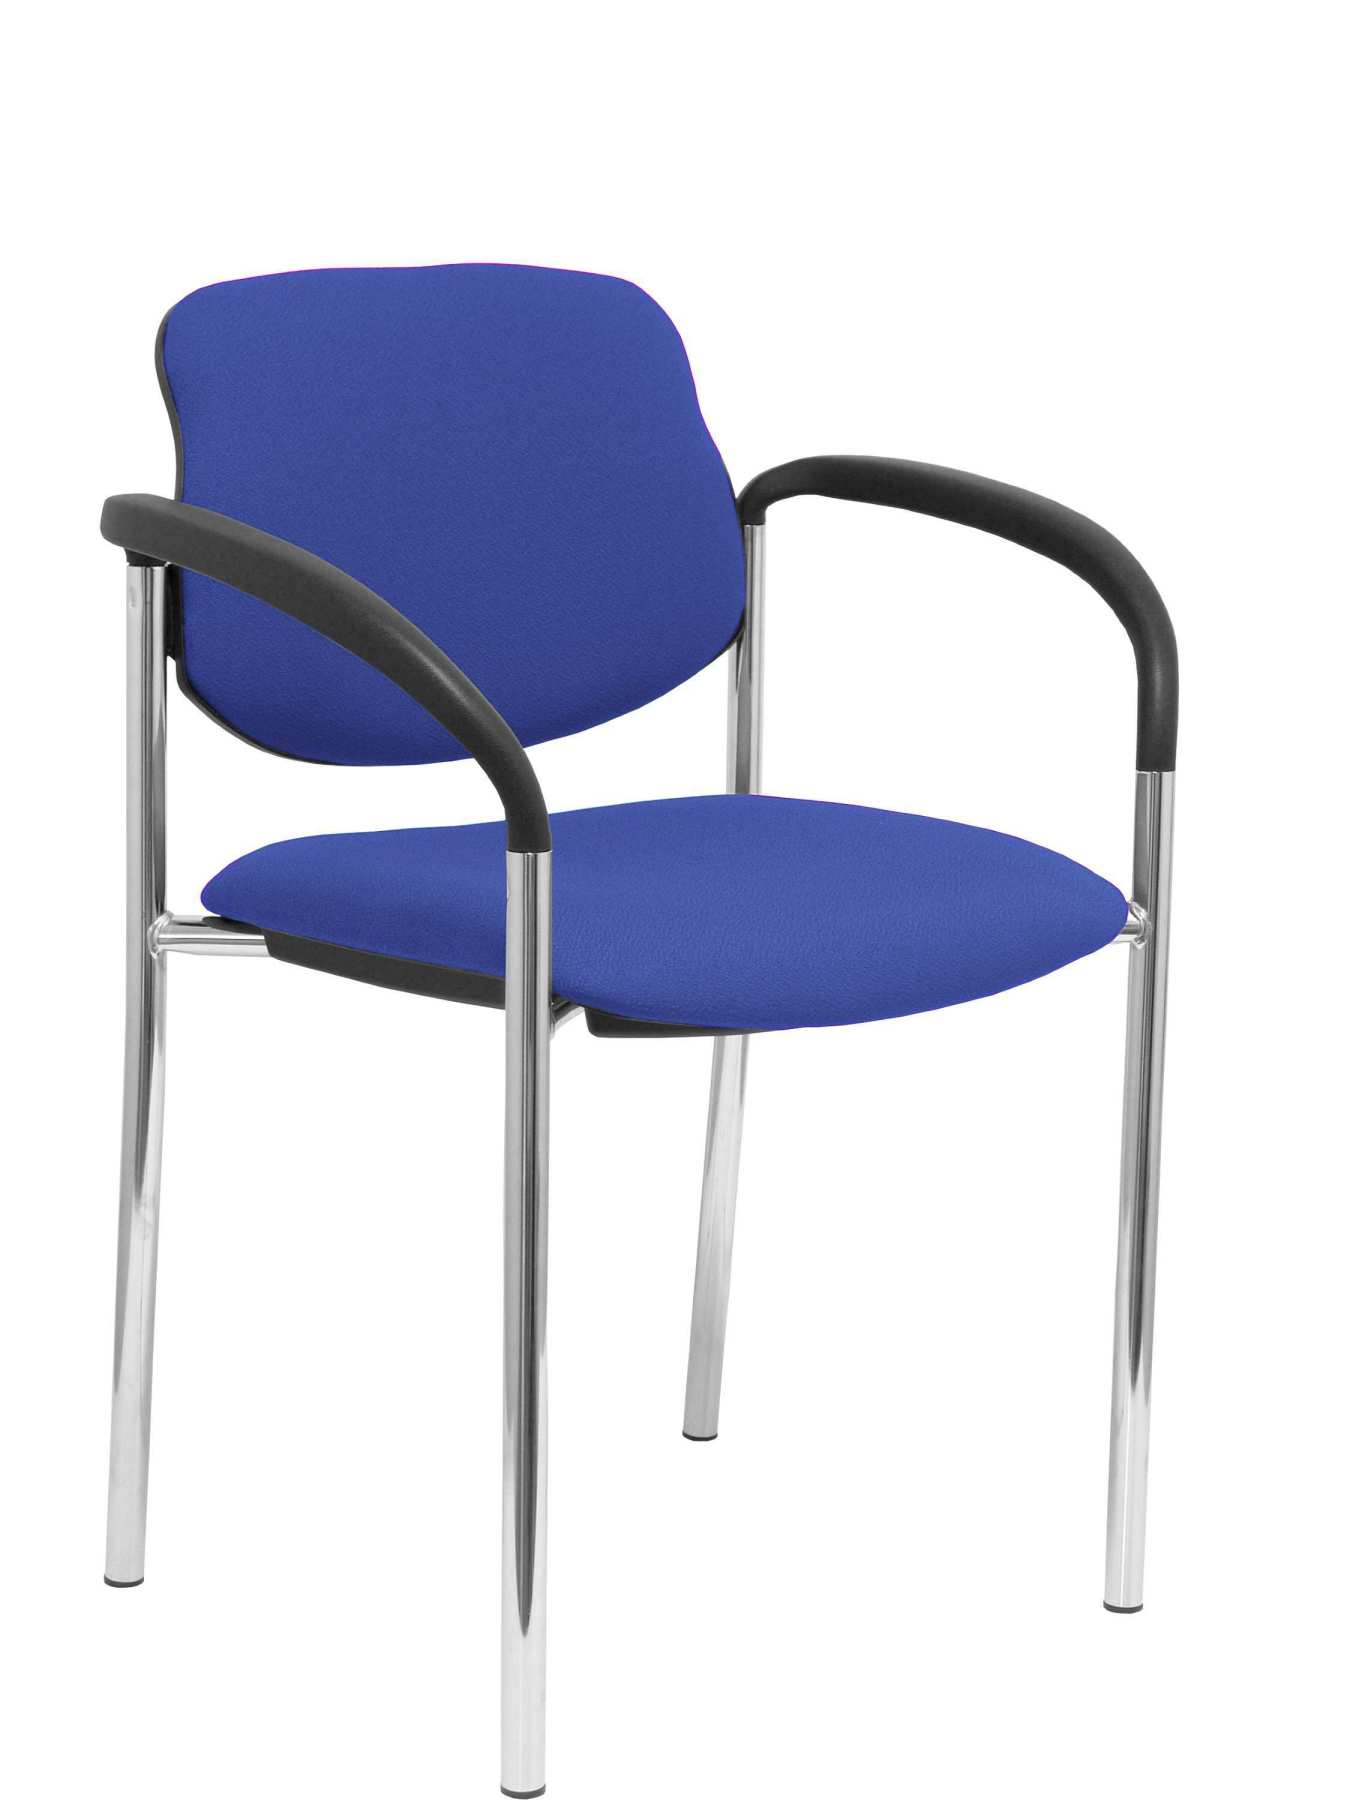 Confident Chair 4-leg And Estructrua Chrome Arms-Seat And Back Upholstered In Fabric BALI Blue Color PIQ